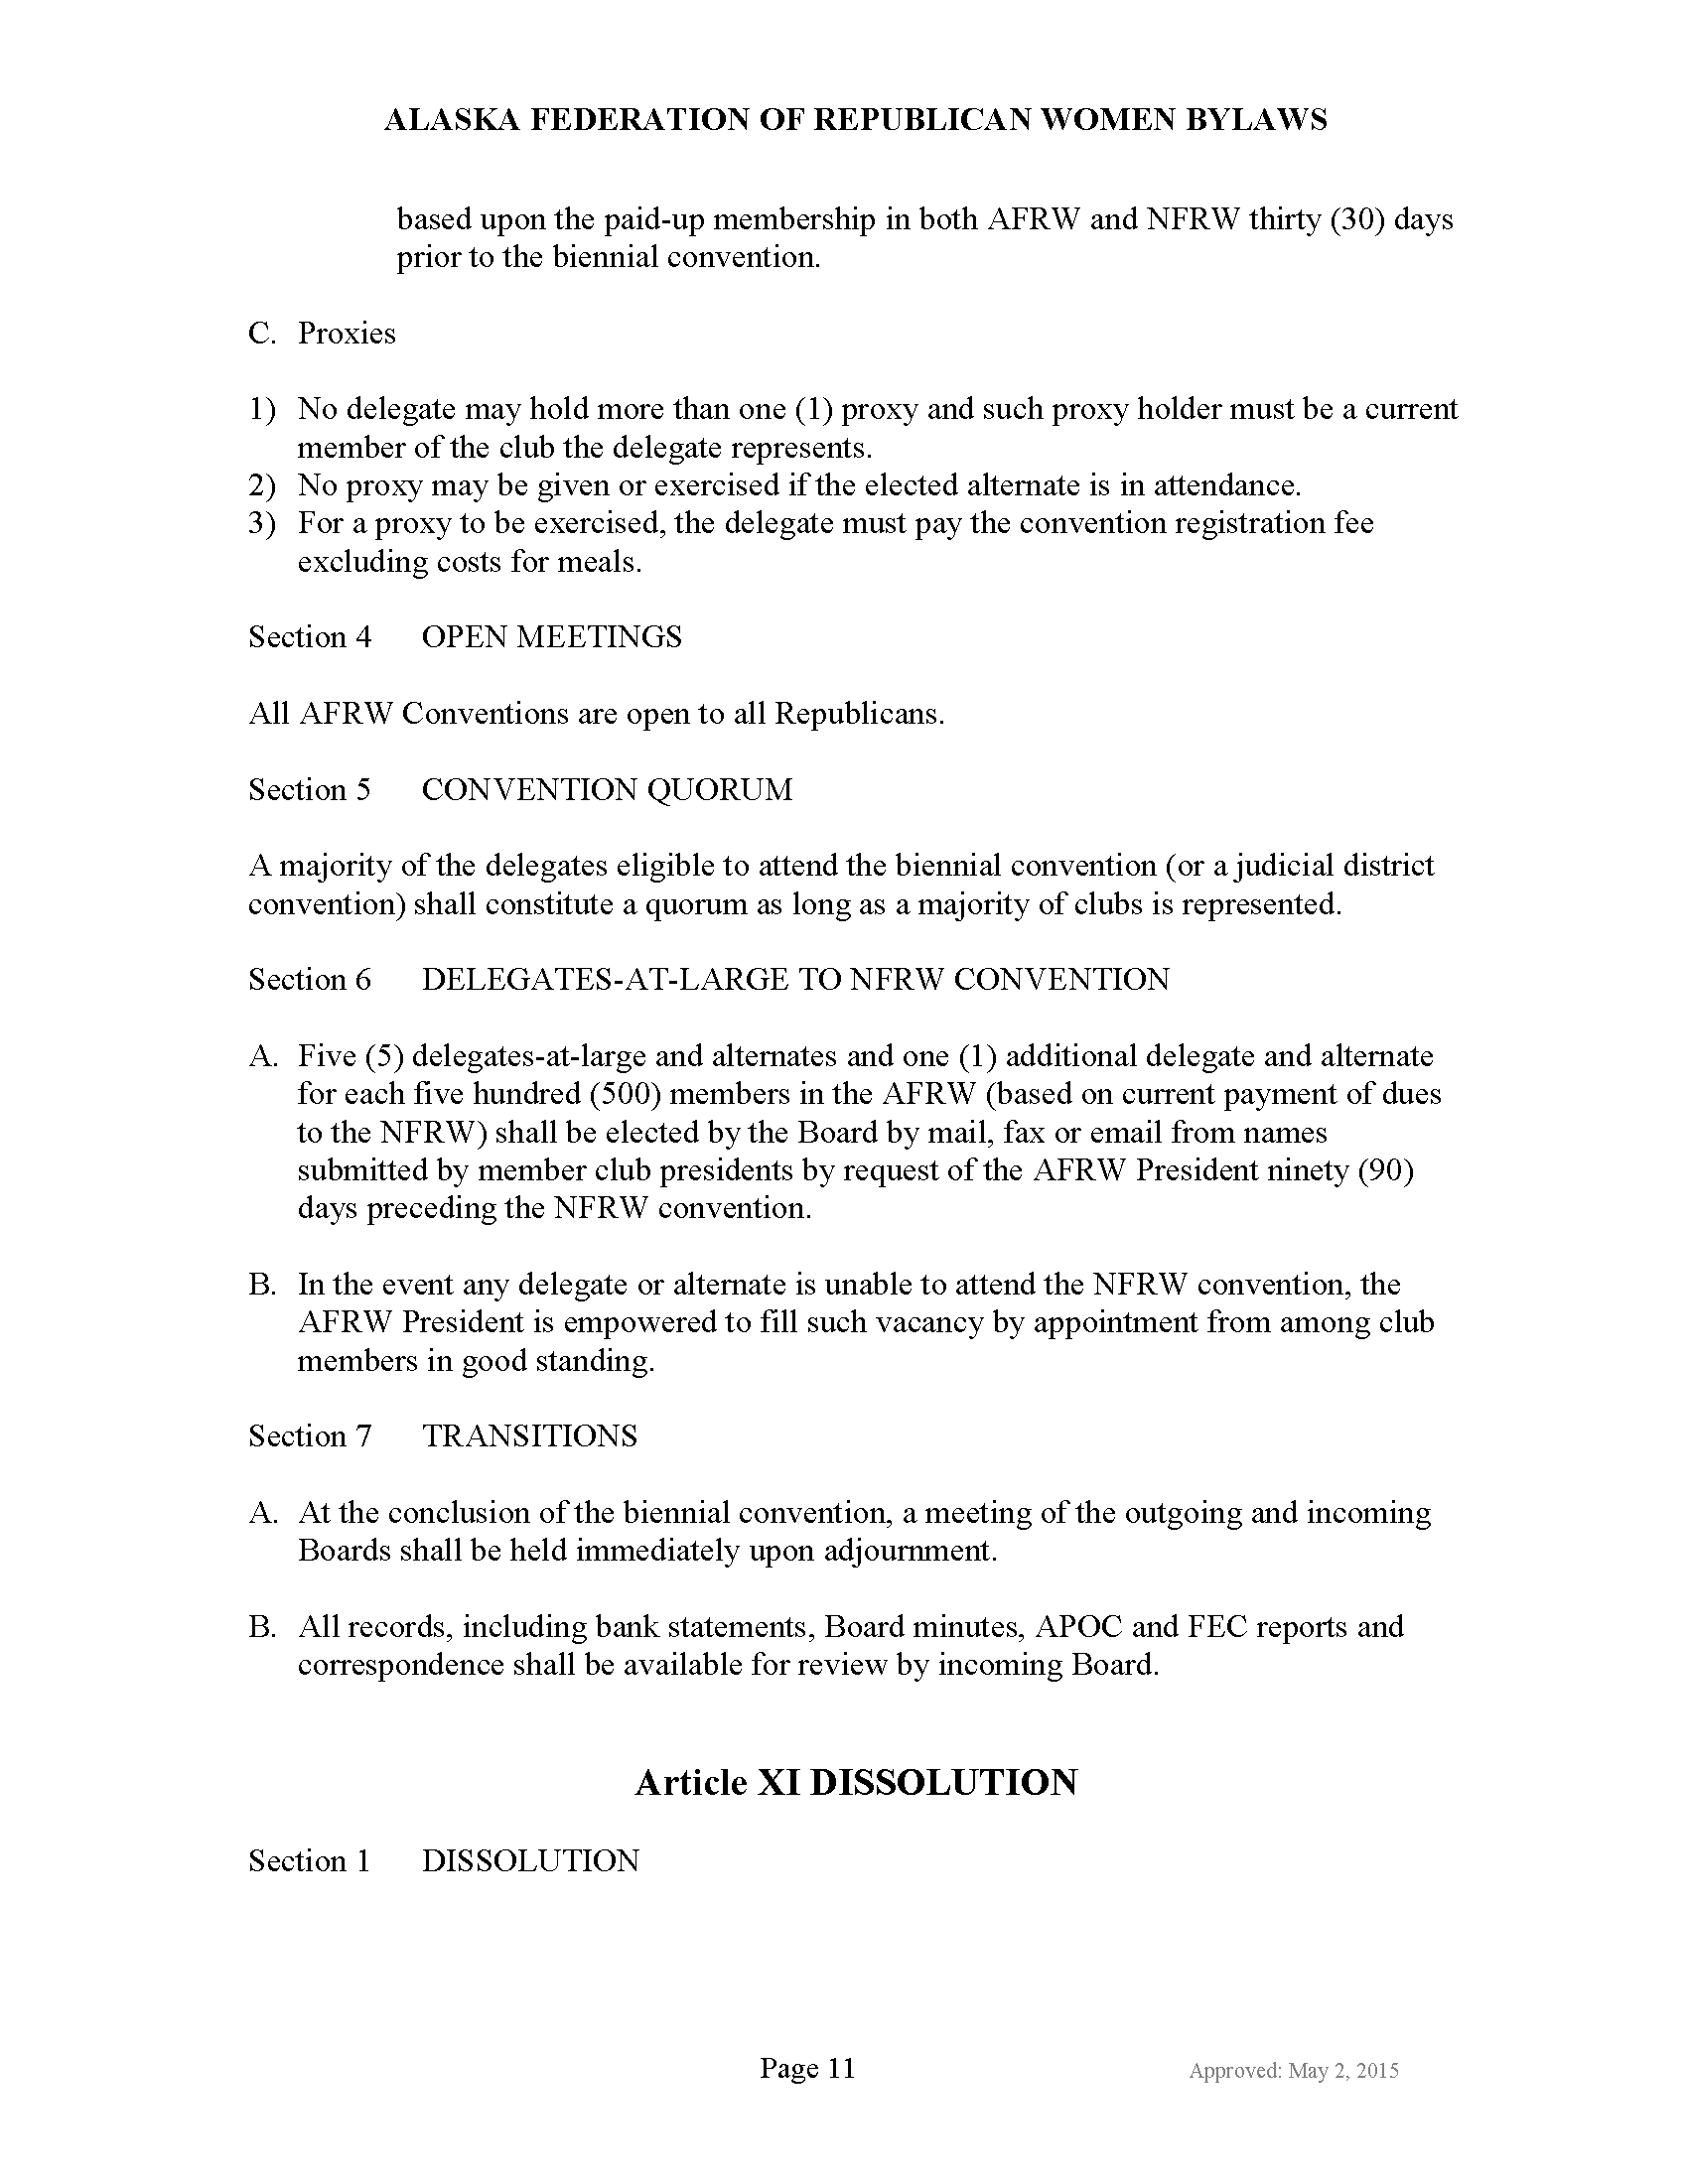 AFRW_Bylaws_ARWC_Approved_May_2__2015__(1)_Page_11.png